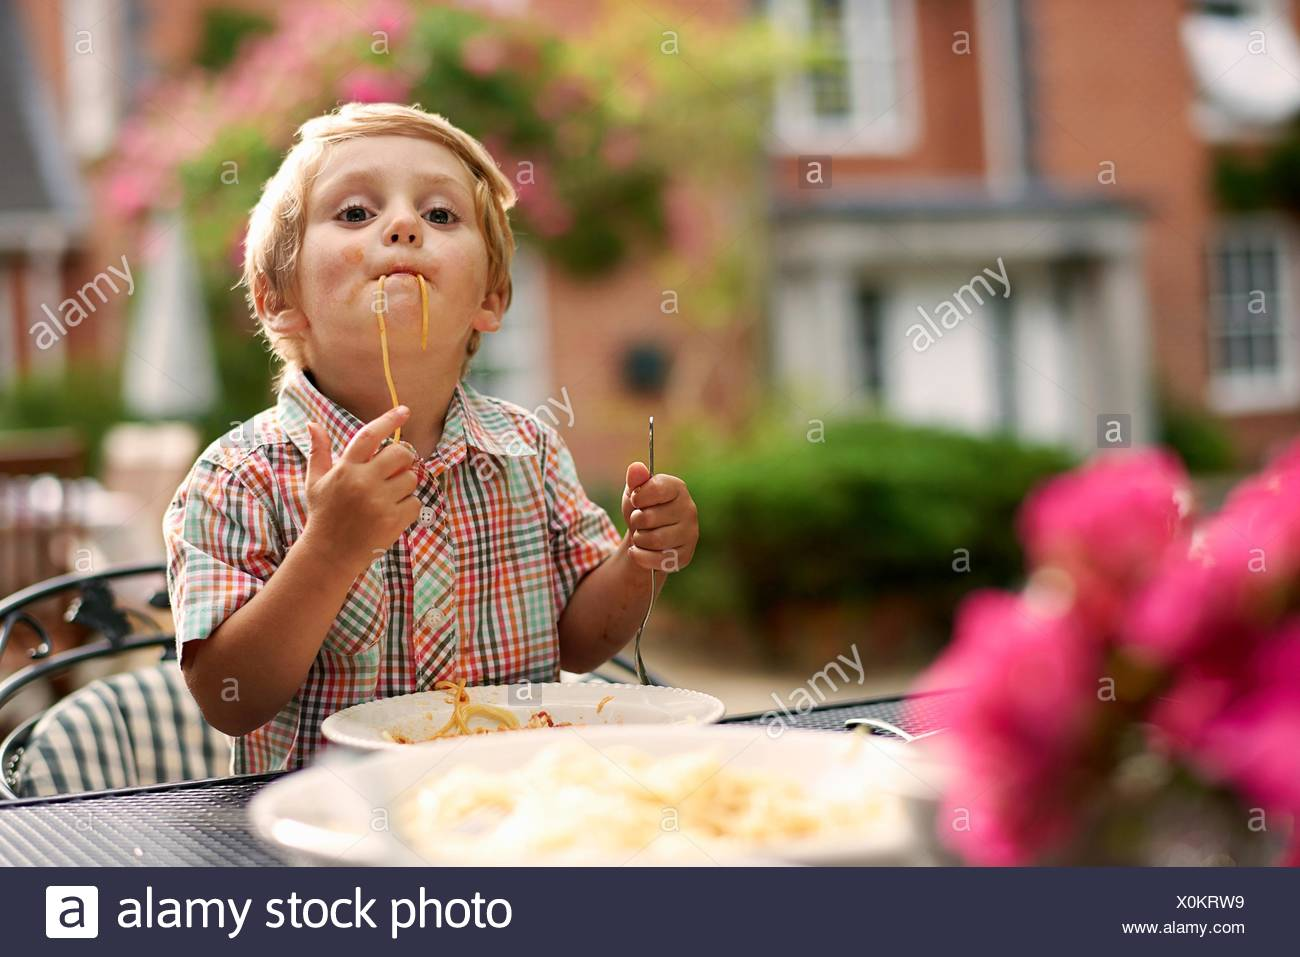 Boy sitting at garden table sucking up spaghetti looking at camera - Stock Image